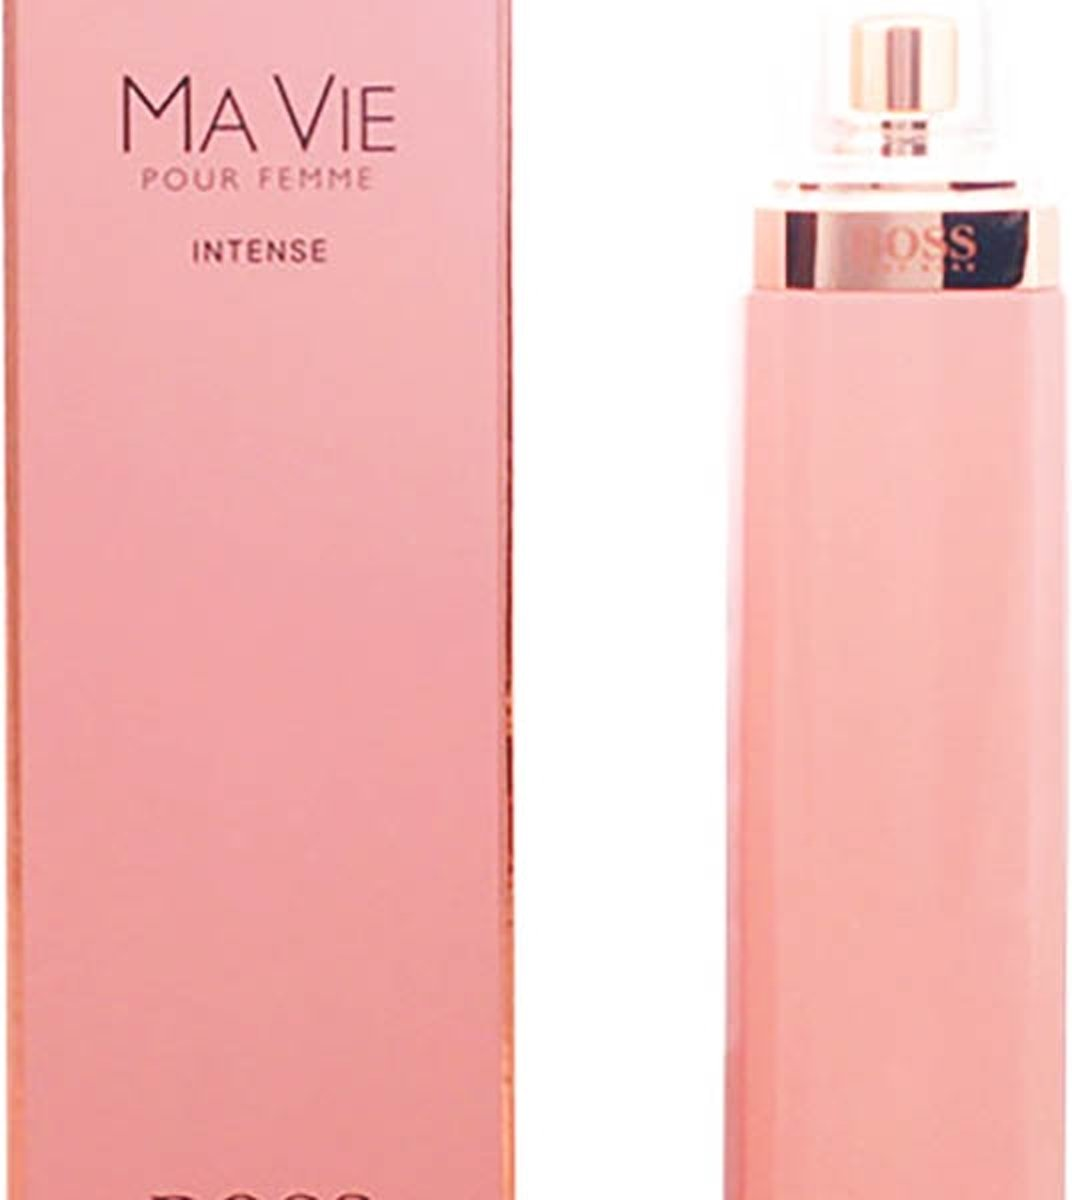 Hugo Boss Ma Vie Intense 50 ml - Eau de parfum - for Women